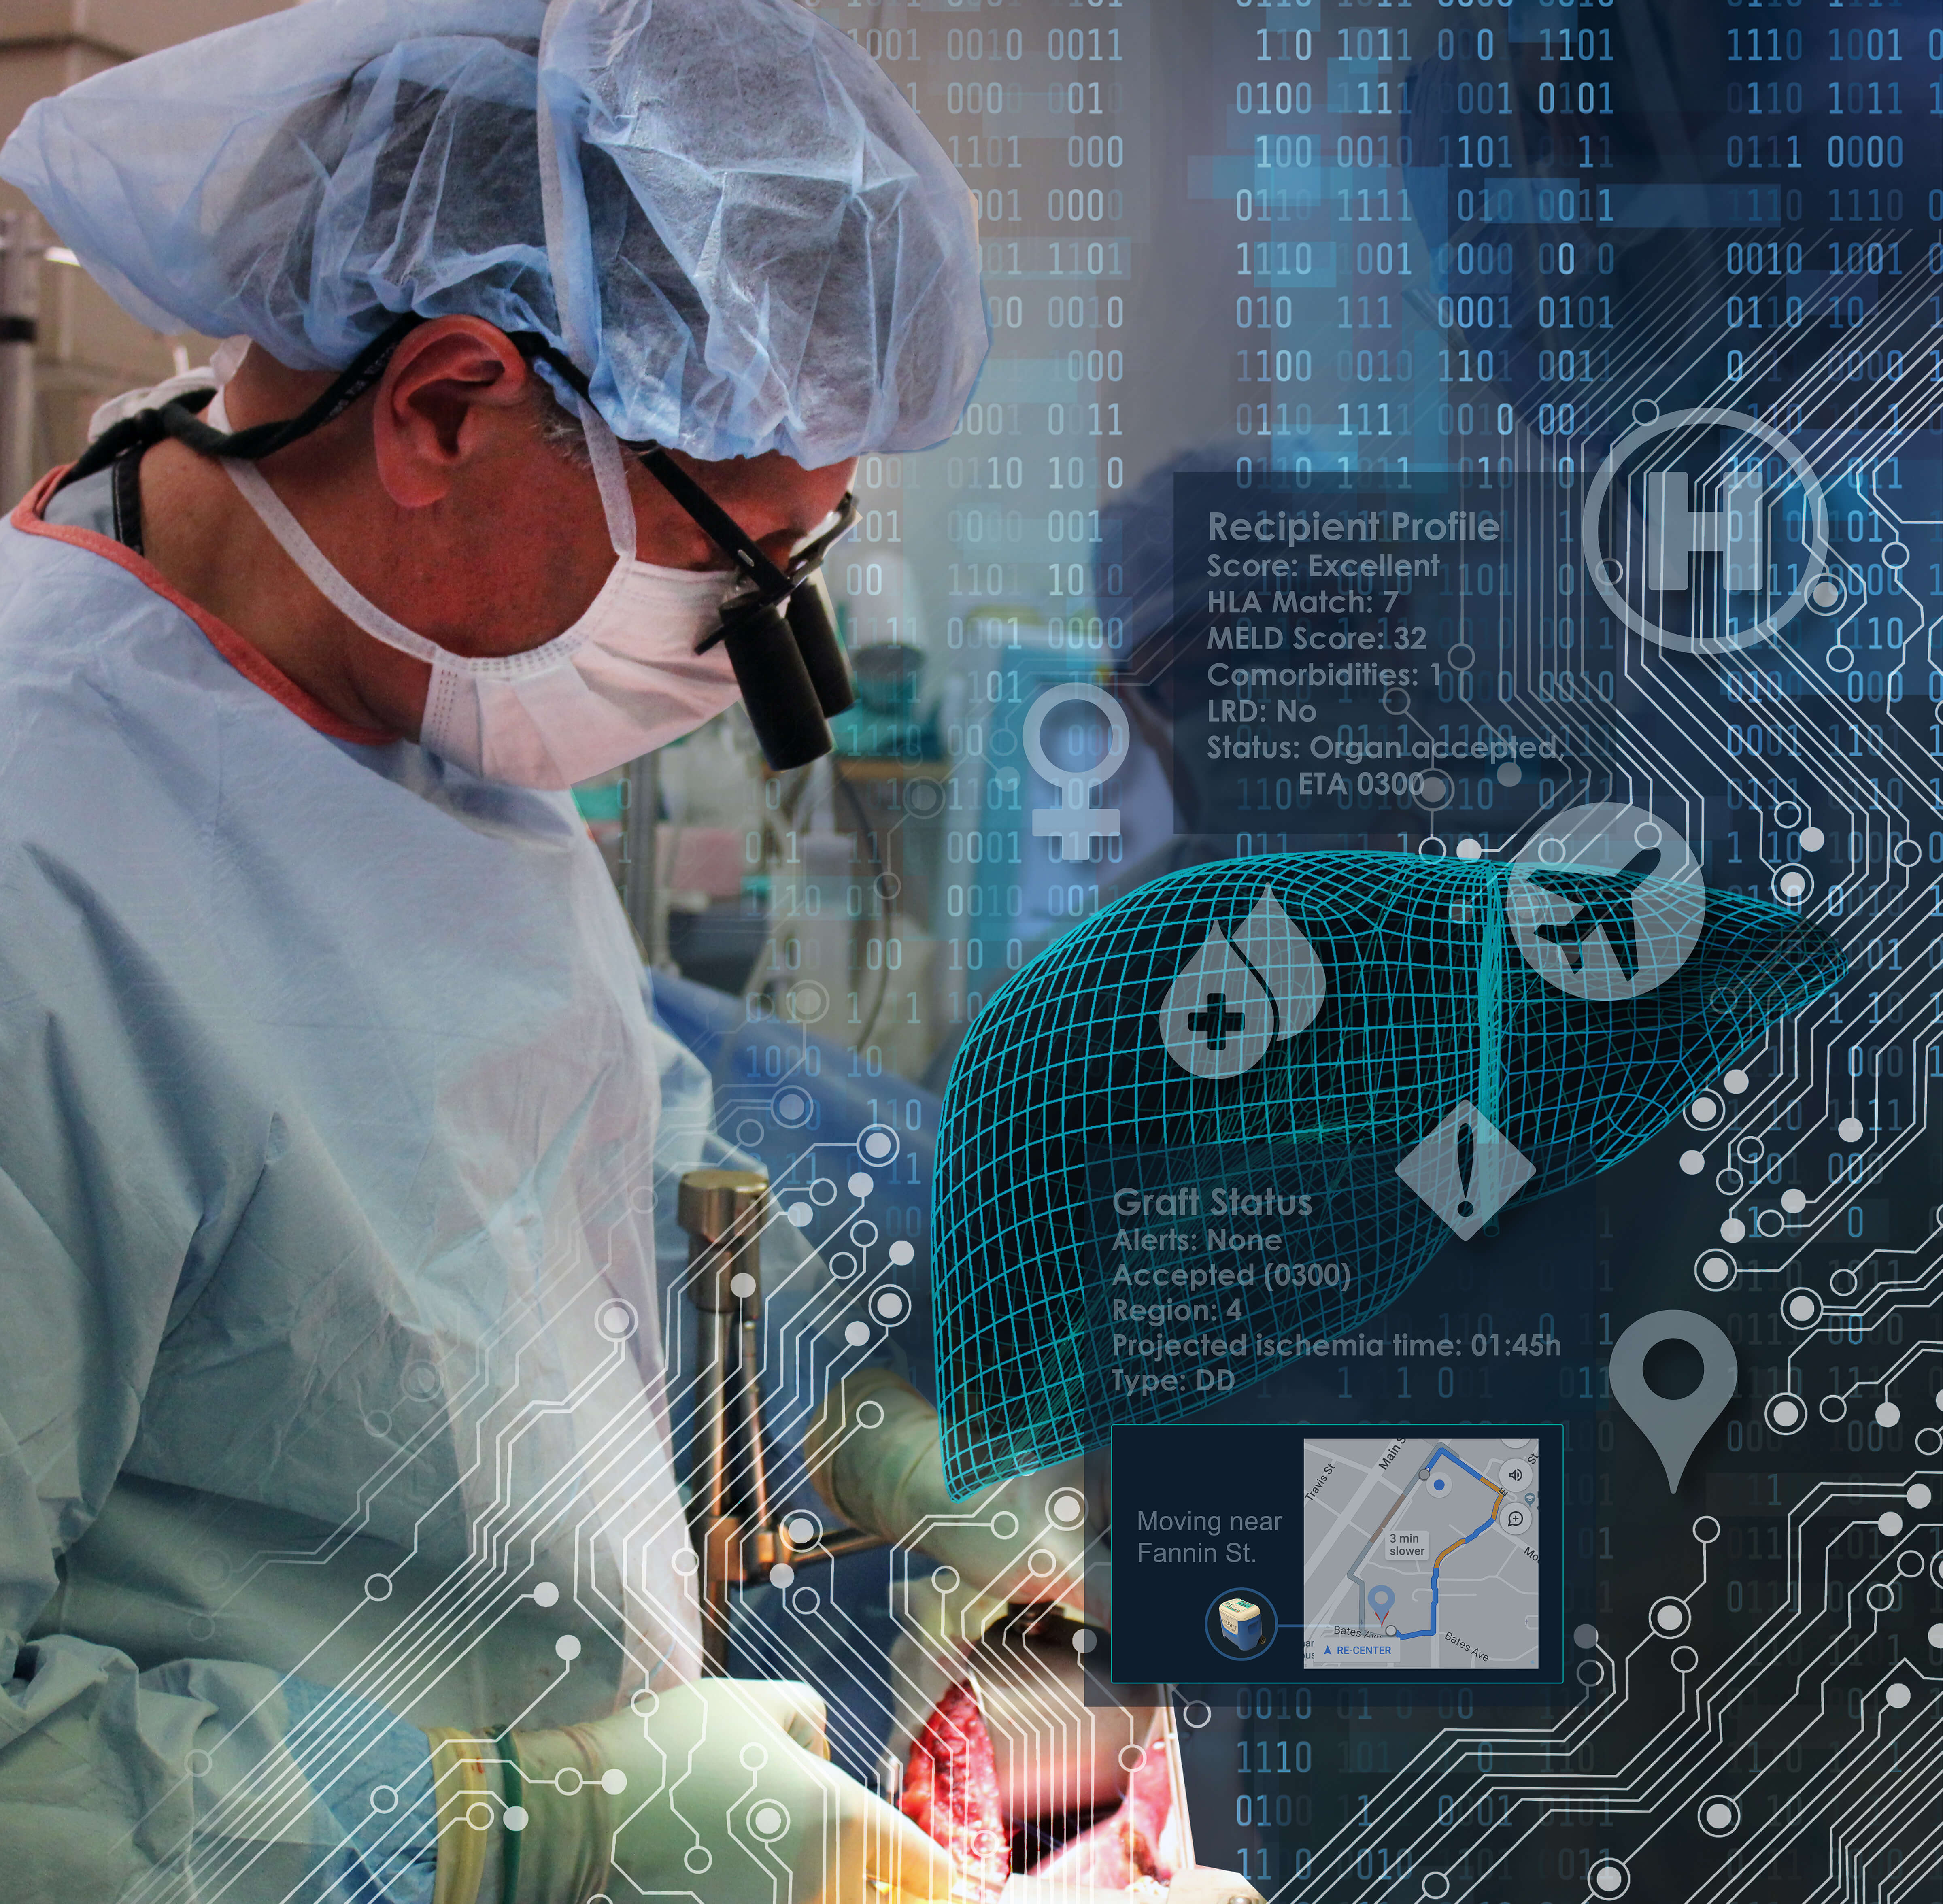 Doctors in the Texas Medical Center are looking for ways to improve organ transplantation outcomes through the use of artificial intelligence. Image by Scott Holmes, CMI.